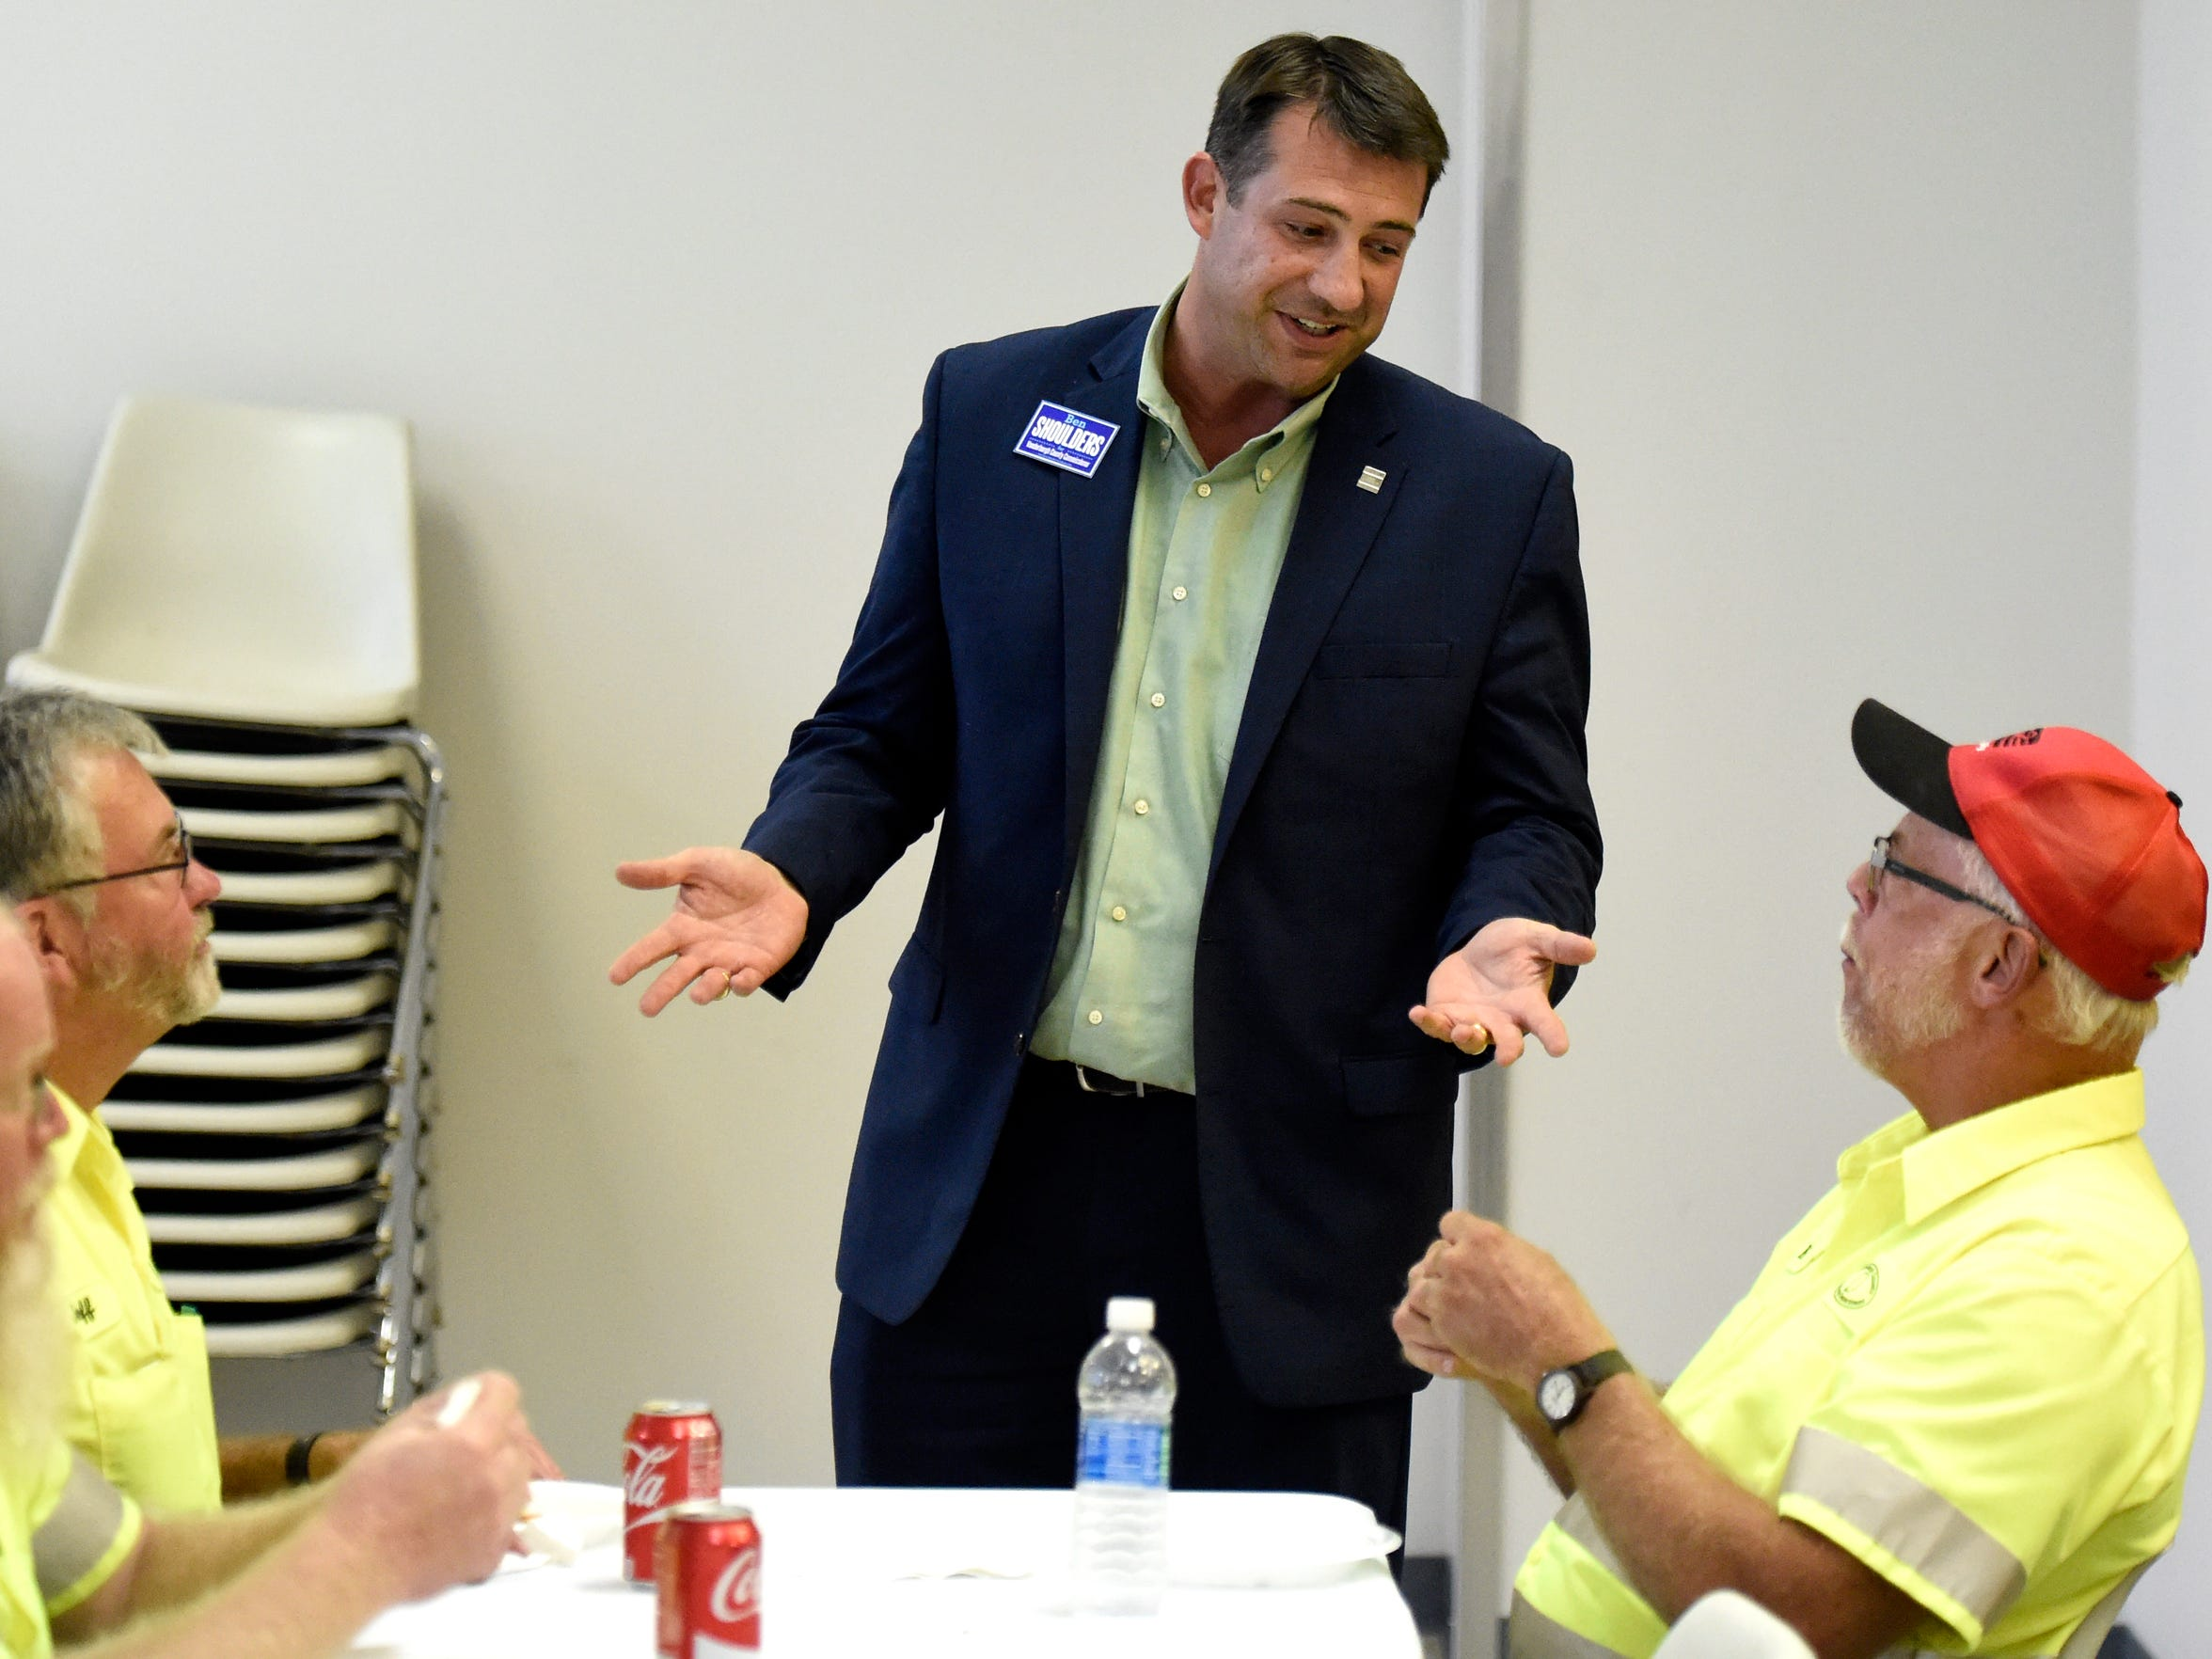 Vanderburgh County Commissioner candidate Ben Shoulders chats with Kirk Humphrey while visiting with workers at the Teamsters Local 215 headquarters in Evansville recently.